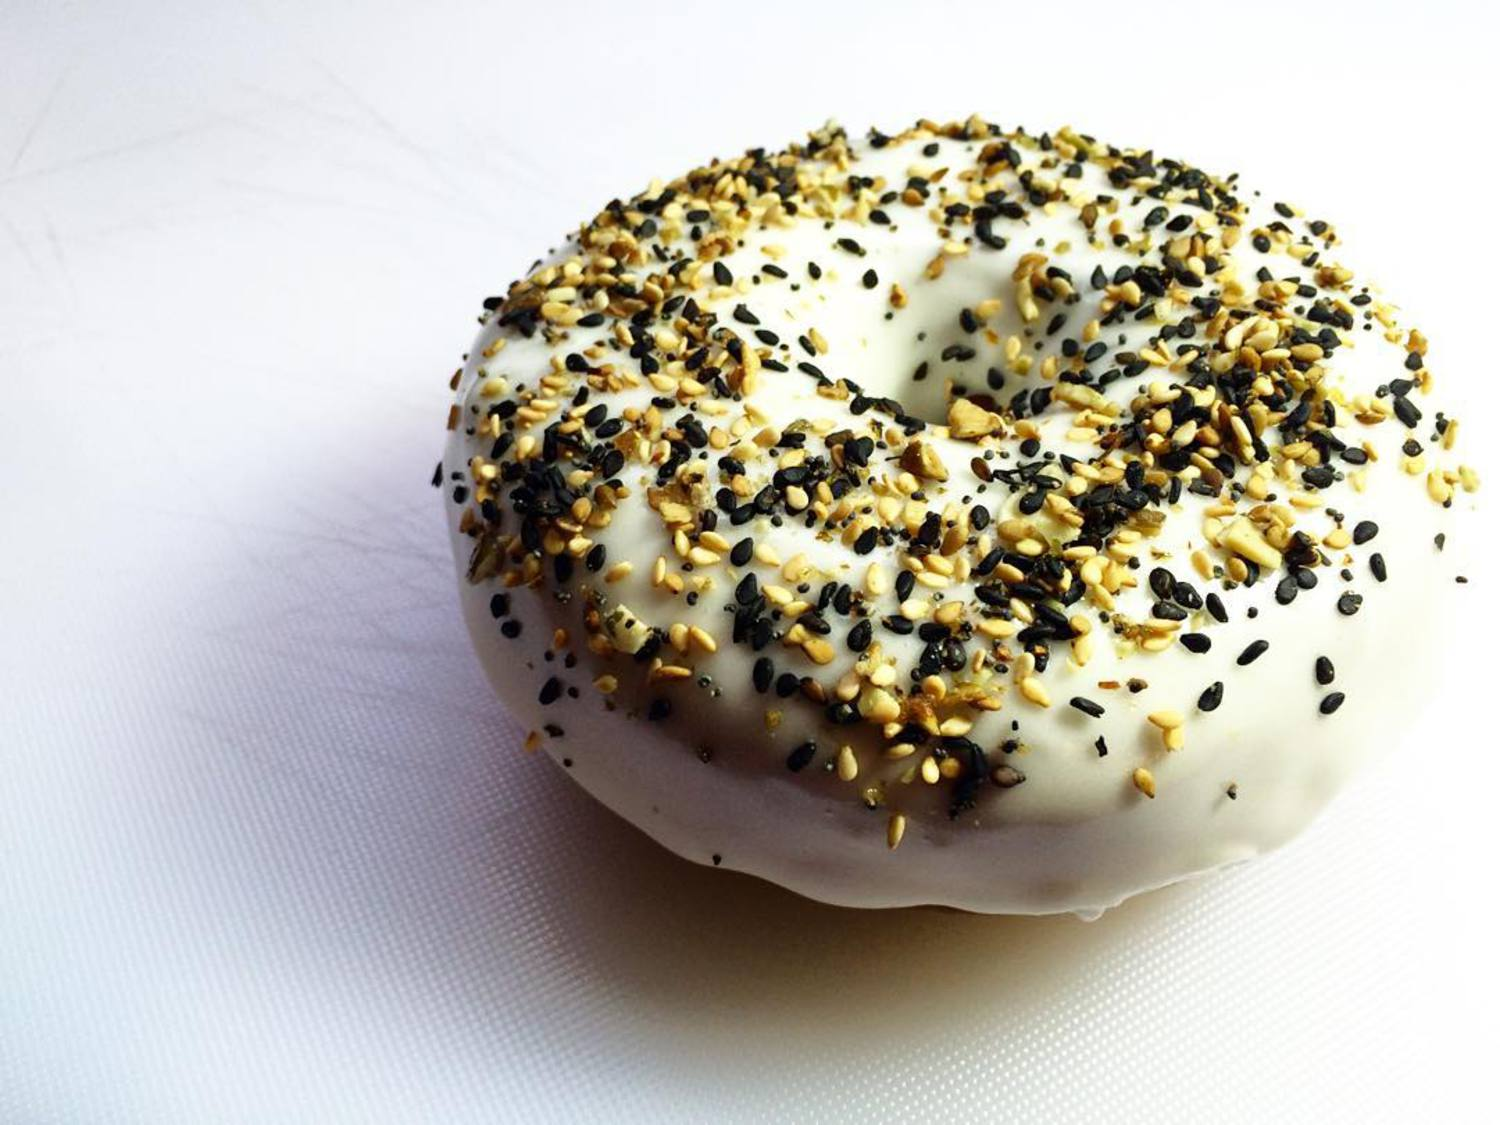 Good morning New York! Can't decide on a bagel or or doughnut? We've taken the worry out of your morning! The Everything Doughnut. #TDPNYC #doughnuts #donuts #food #cheese #yum #goodmorning #nyc #newyork #instafood #instagood #instadaily #fun #smile #different #makeithappen #laugh #wemakefun #blog #enjoy